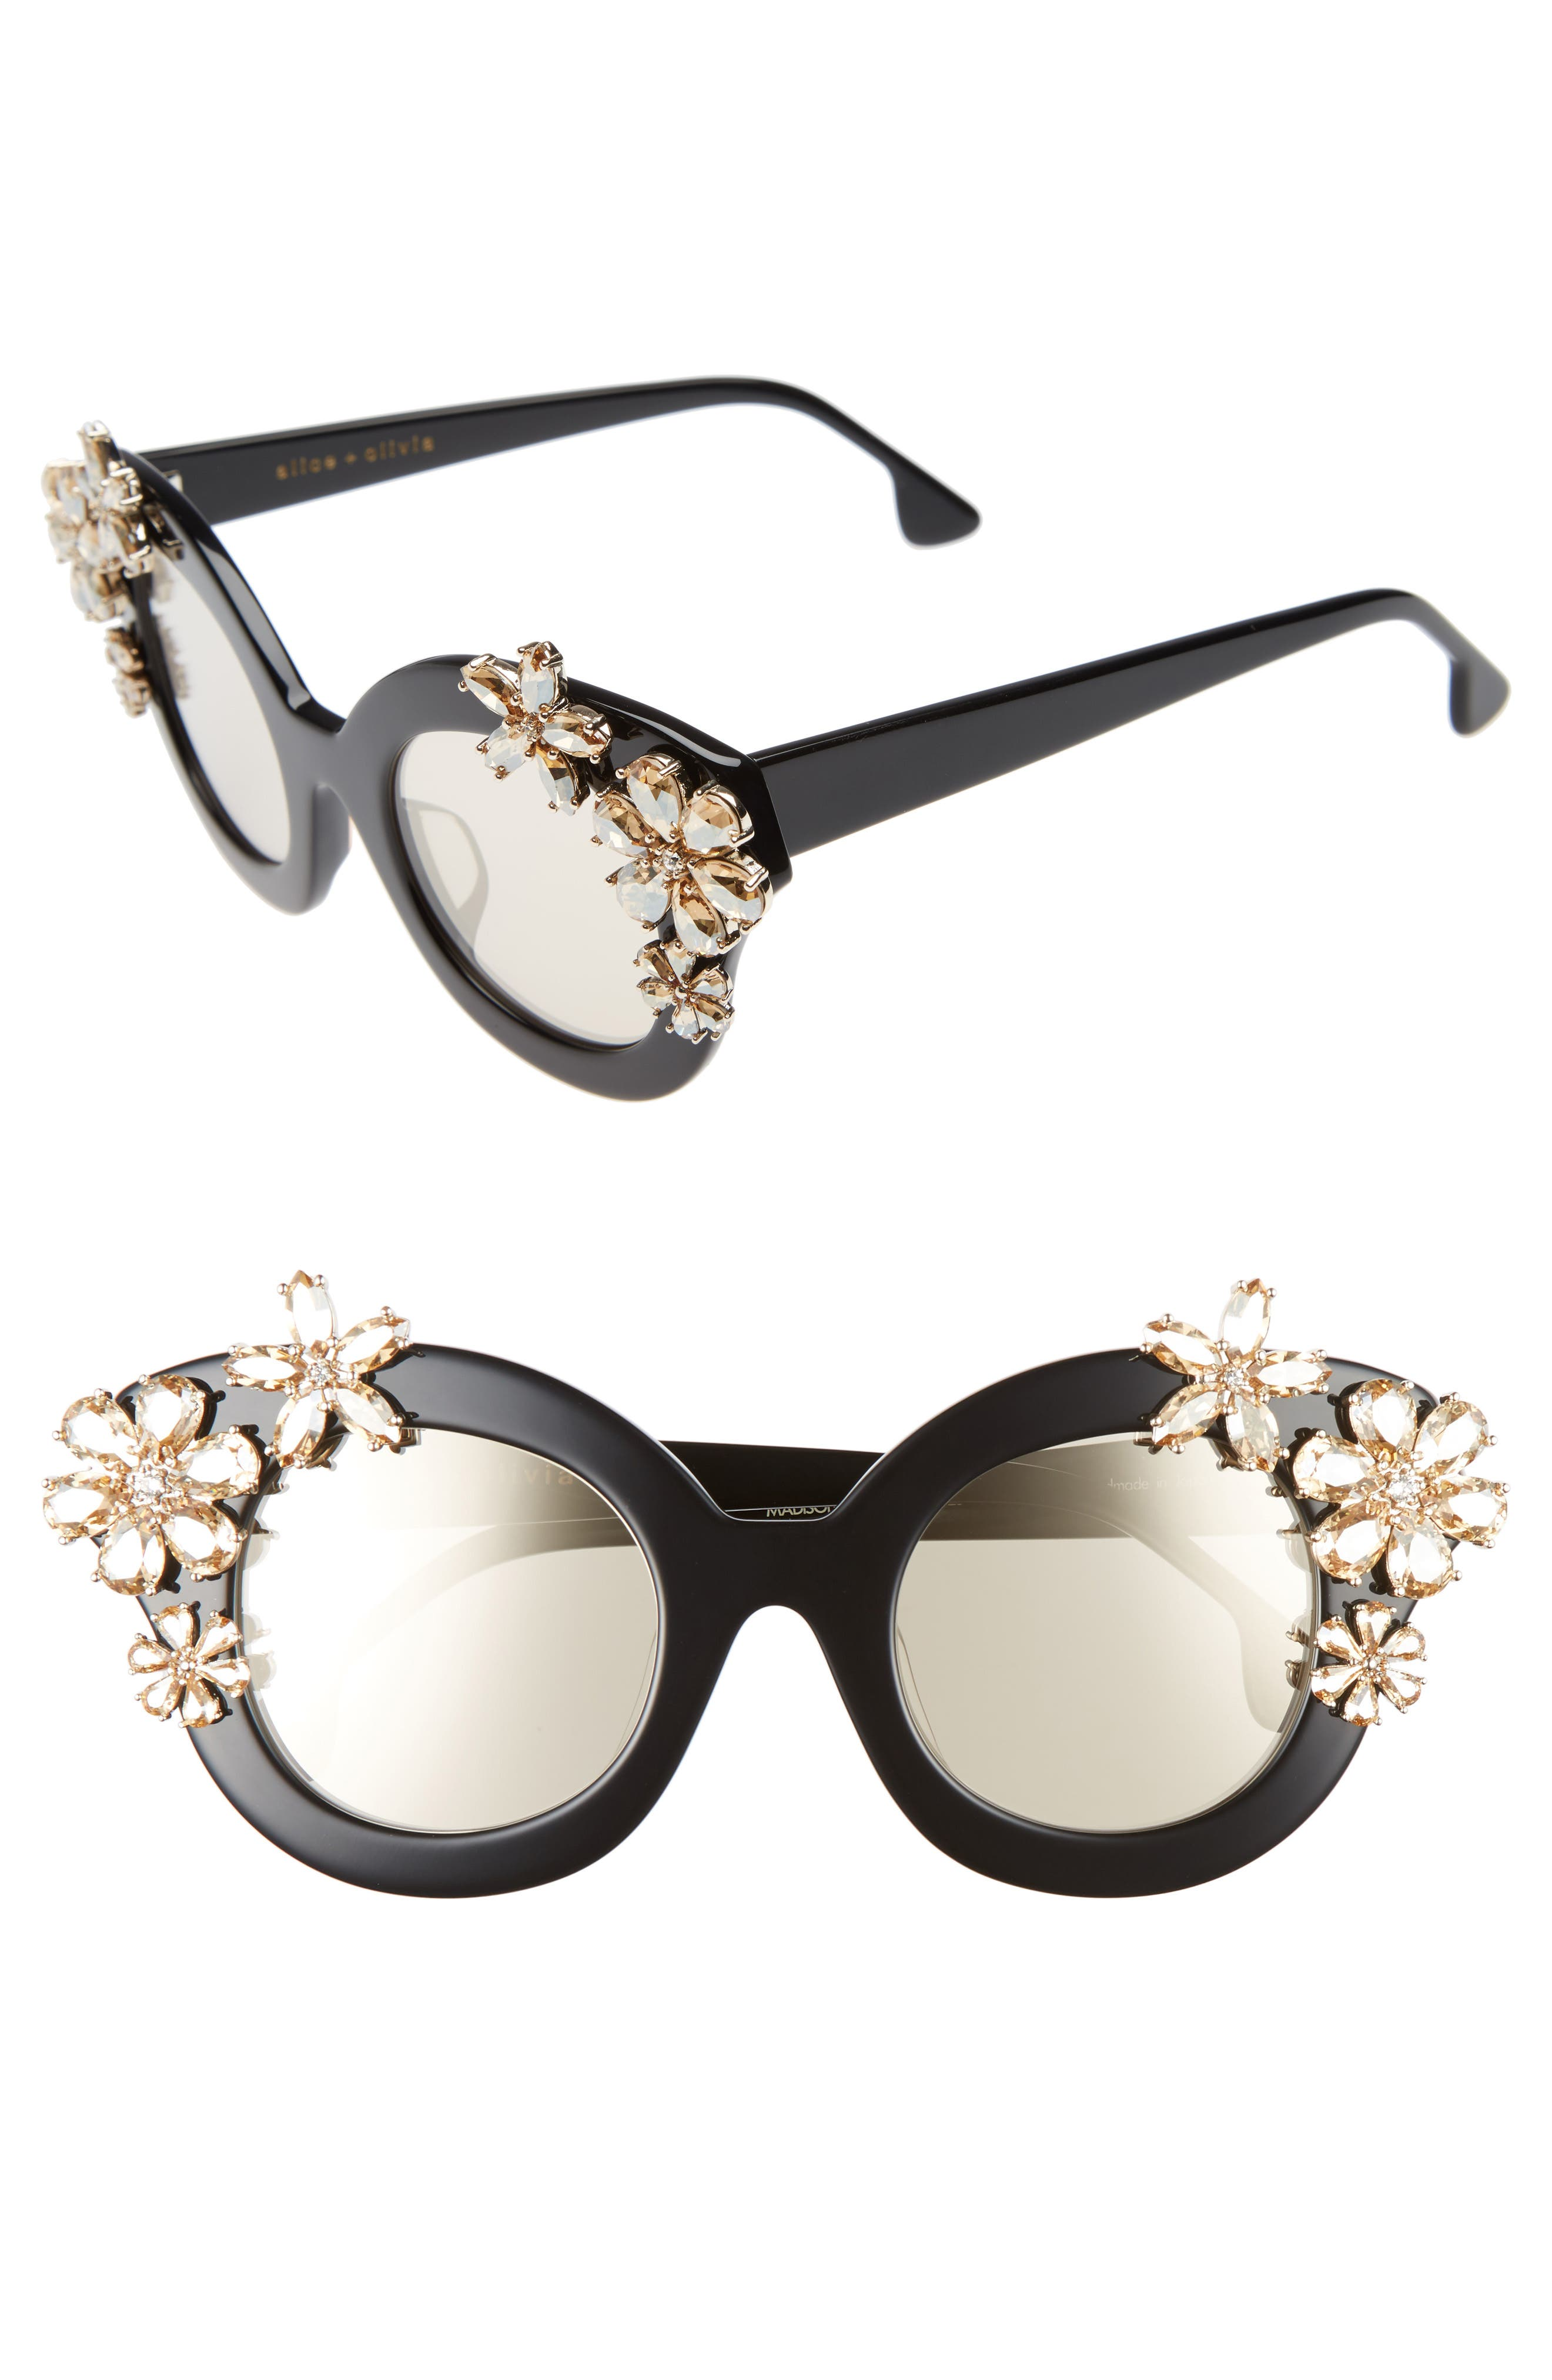 Madison Floral 46mm Special Fit Embellished Cat Eye Sunglasses,                         Main,                         color, 001